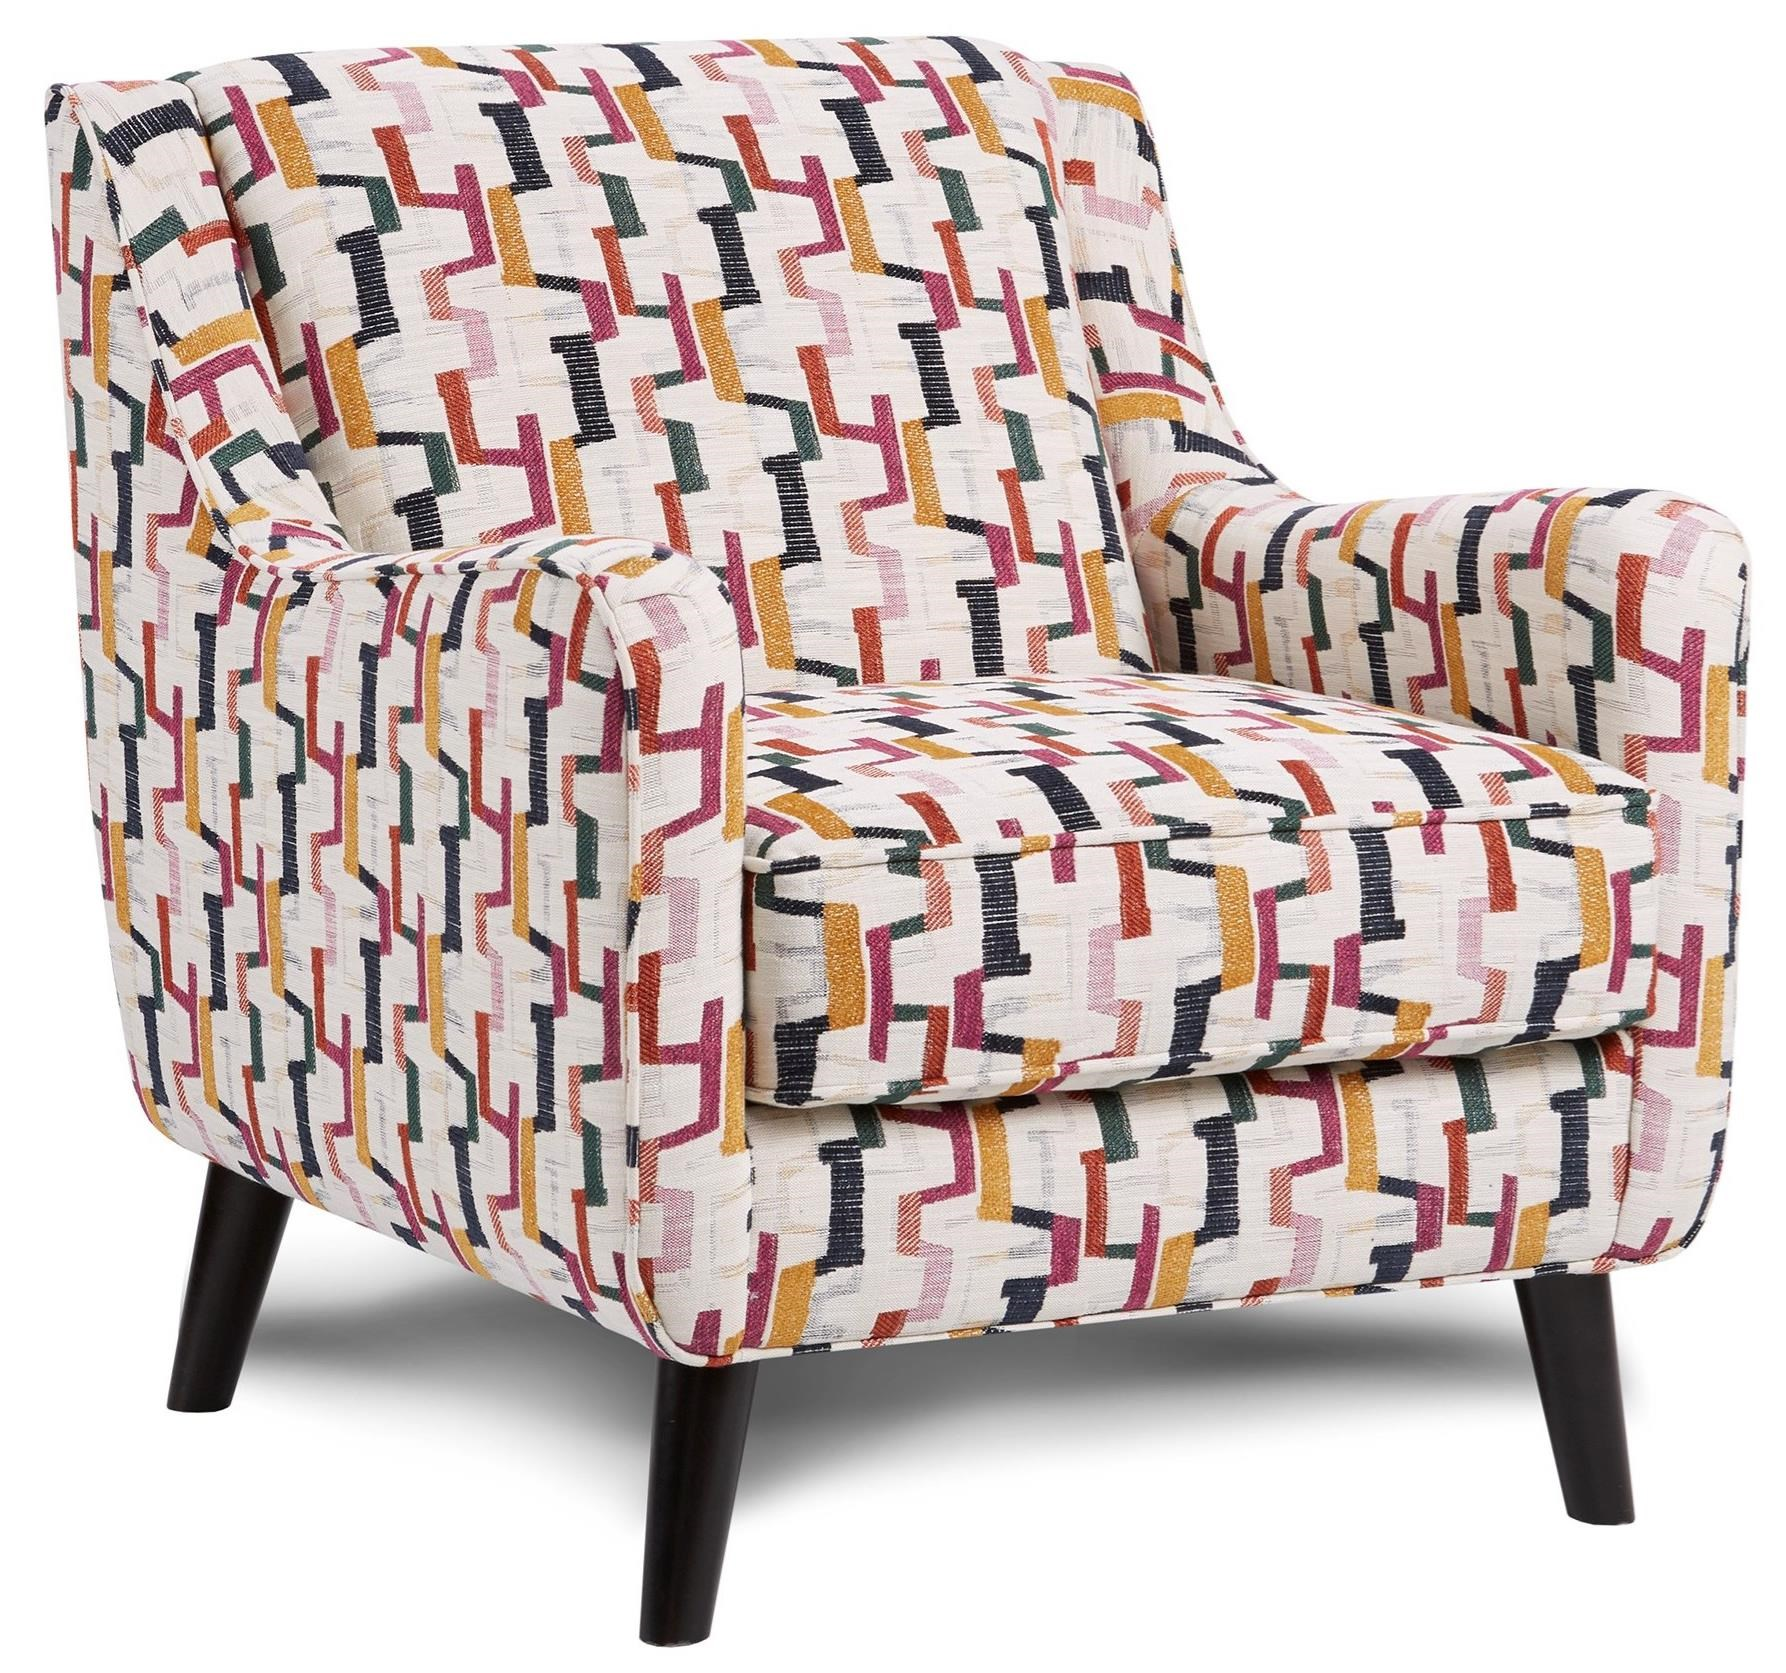 4200-KP SHADOWFAX DOVE (REVOLUTION) Accent Chair by Fusion Furniture at Story & Lee Furniture